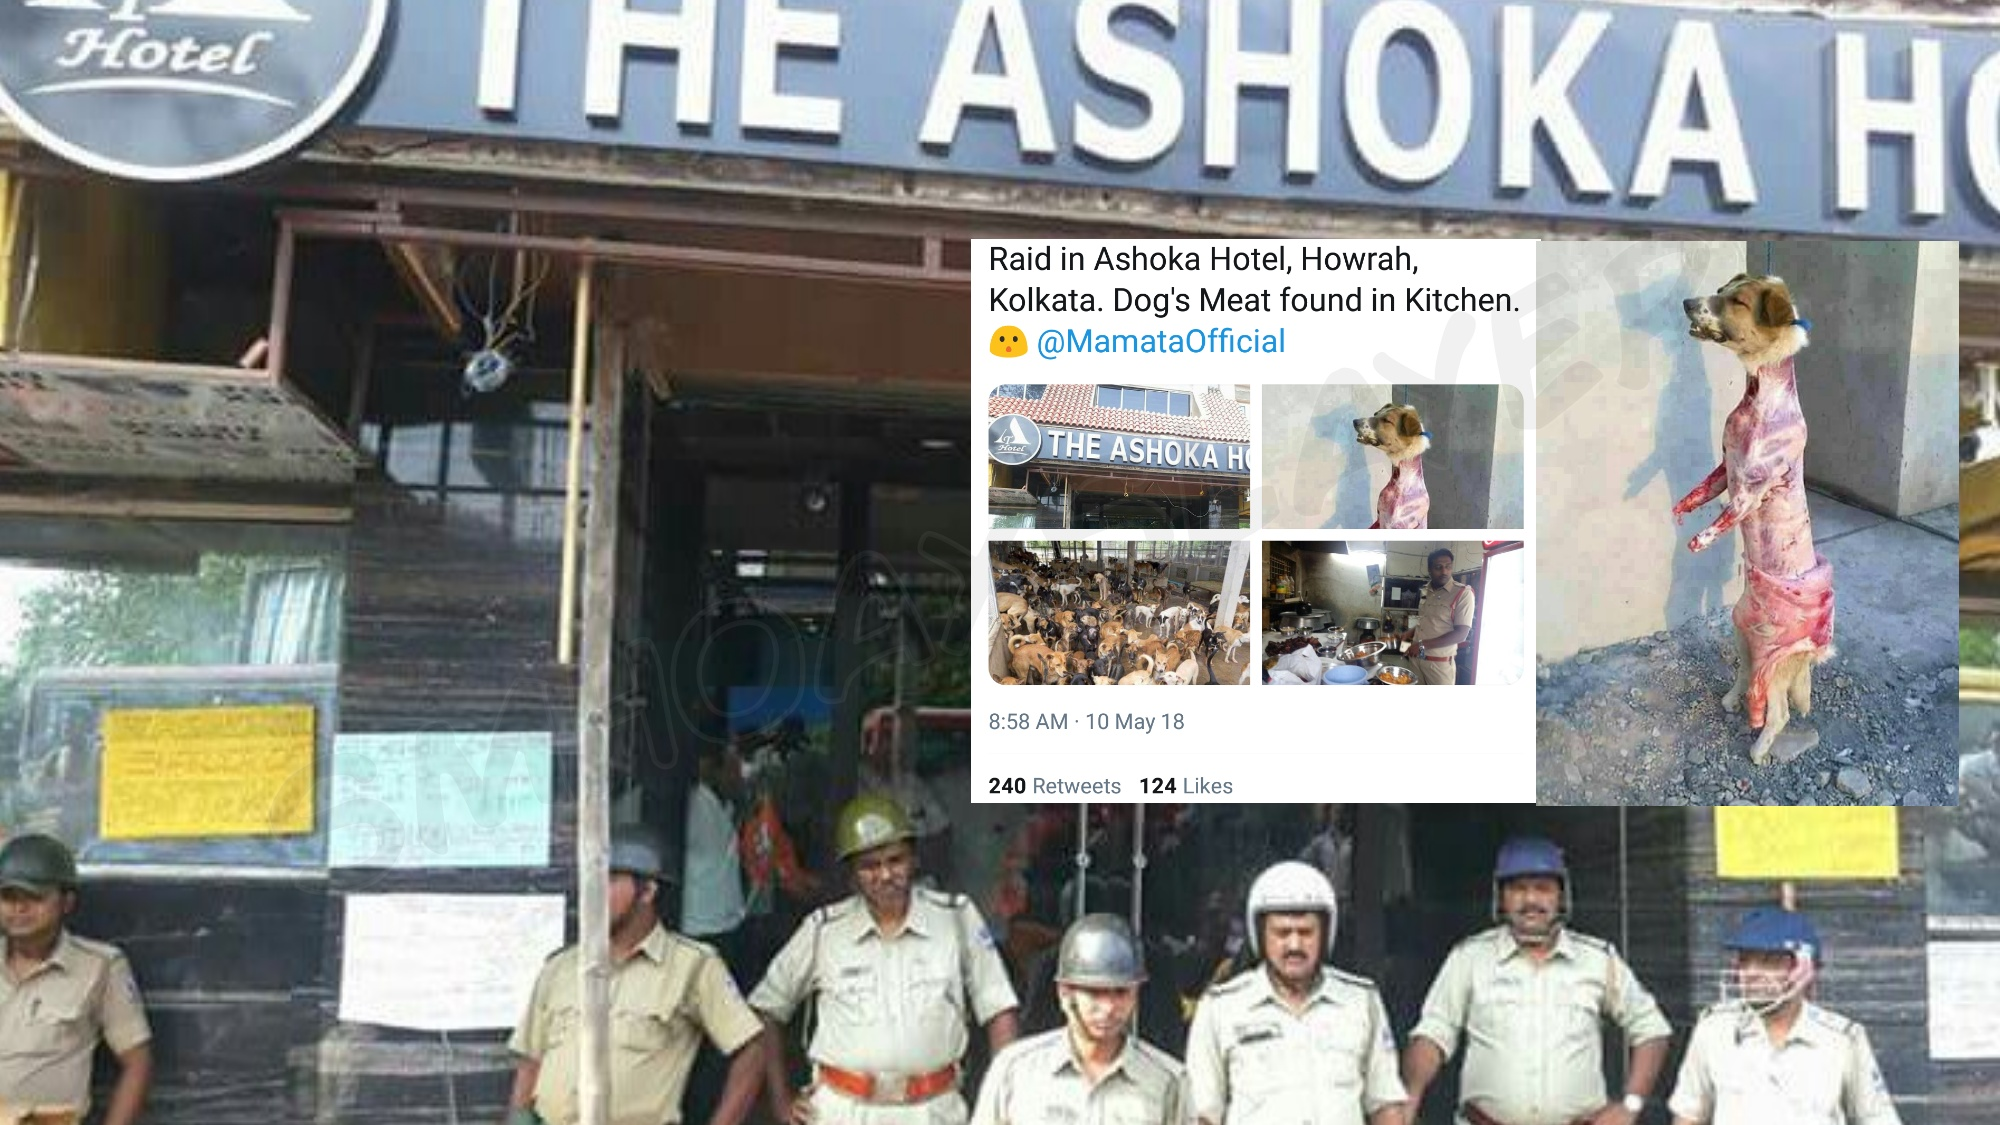 Was dog meat found in Ashoka Hotel raid ? - Swachh Social Media Abhiyaan